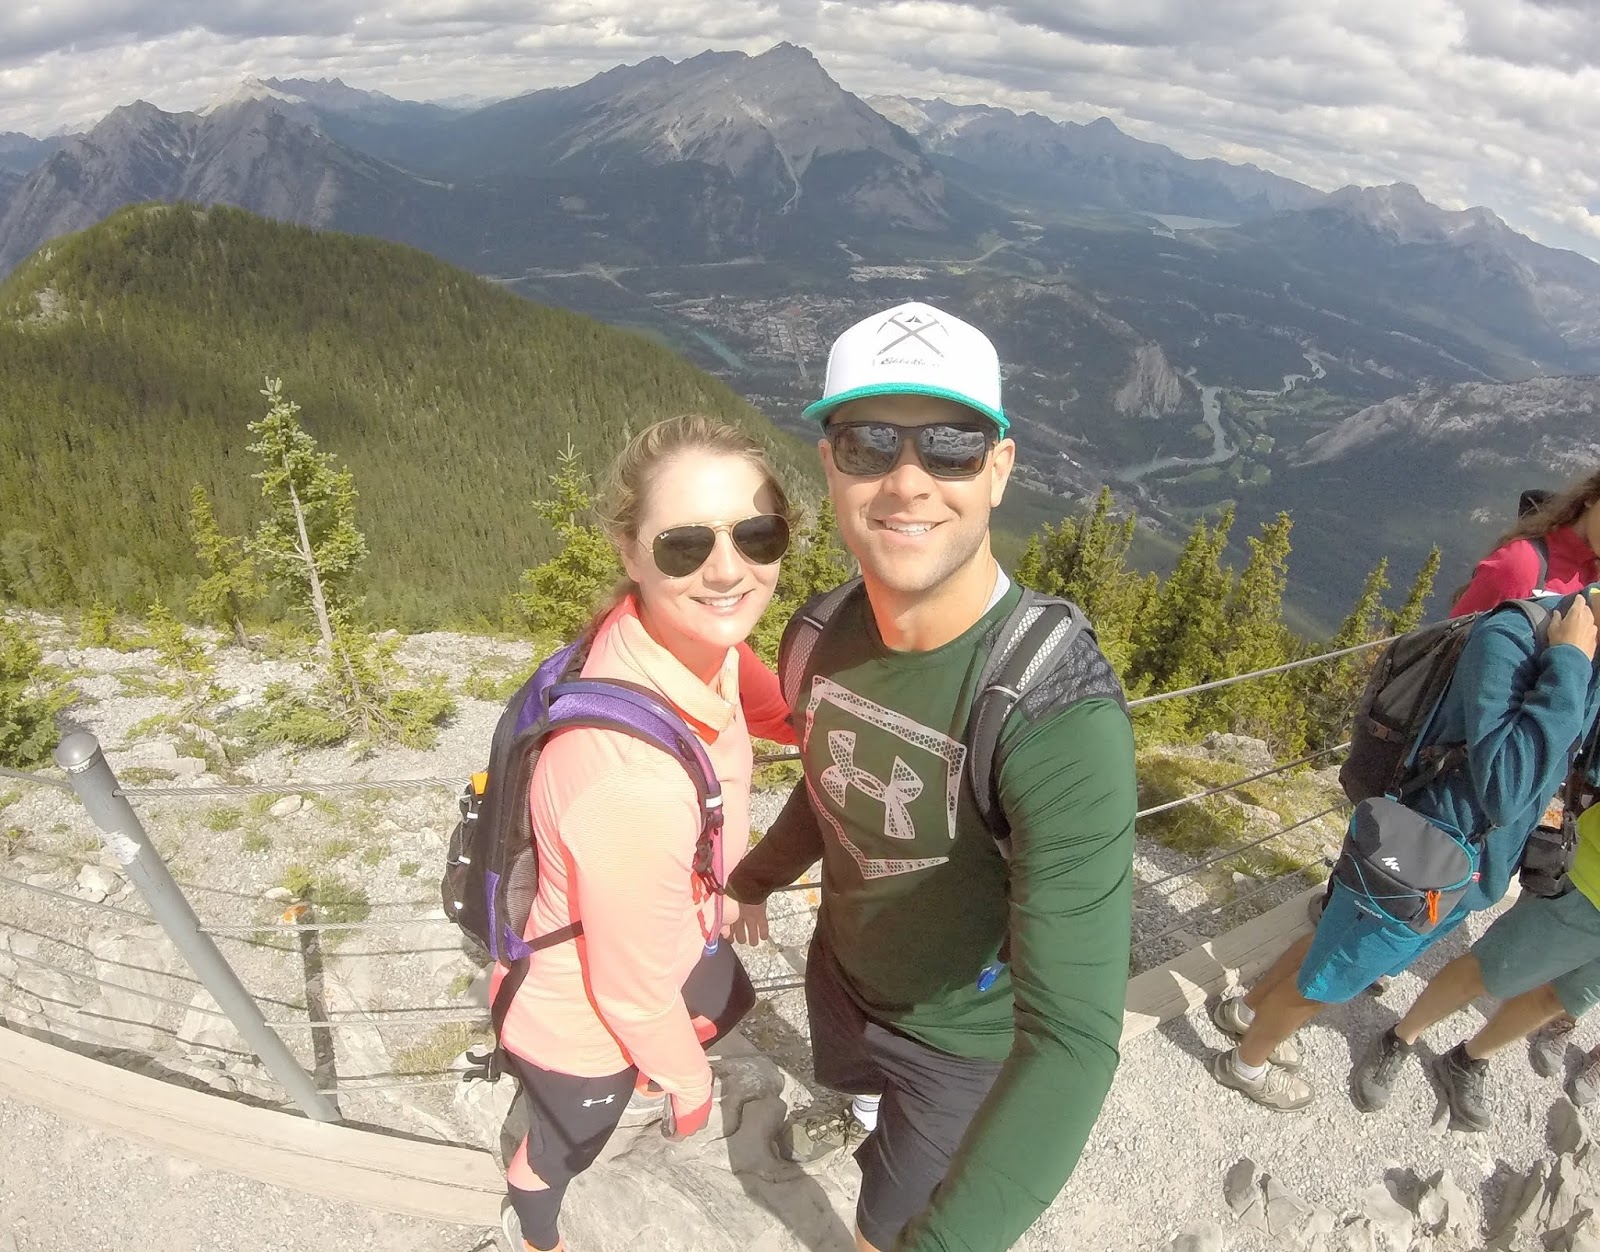 Top of Sulphur Mountain | Sulphur Mountain Hike | Banff Itinerary | Things to See in Banff | Banff Travel Guide | A Memory of Us